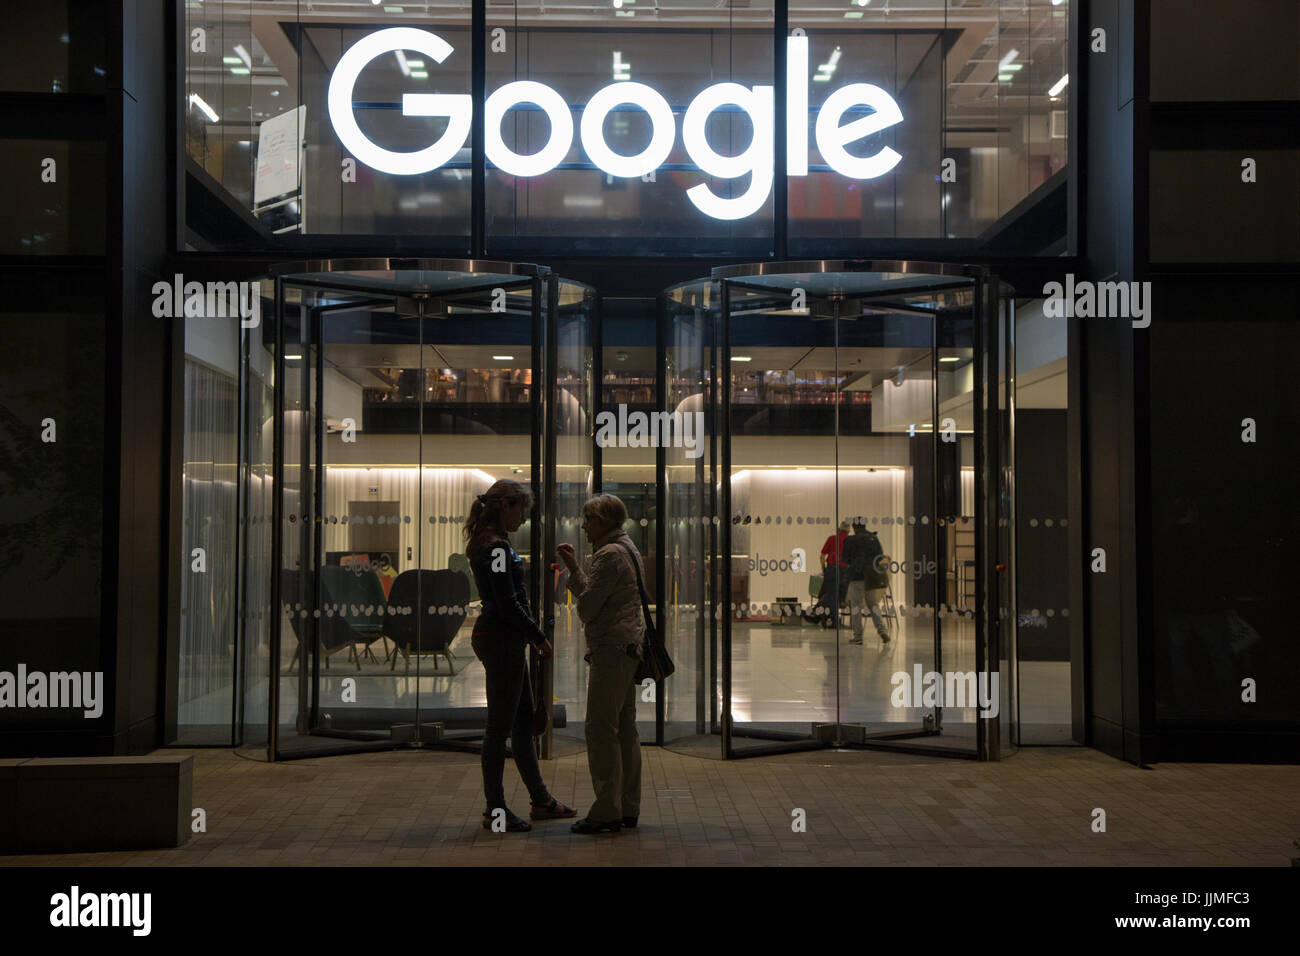 Google's temporary premises before they move into a purpose-built office. Located at King's Cross - Stock Image